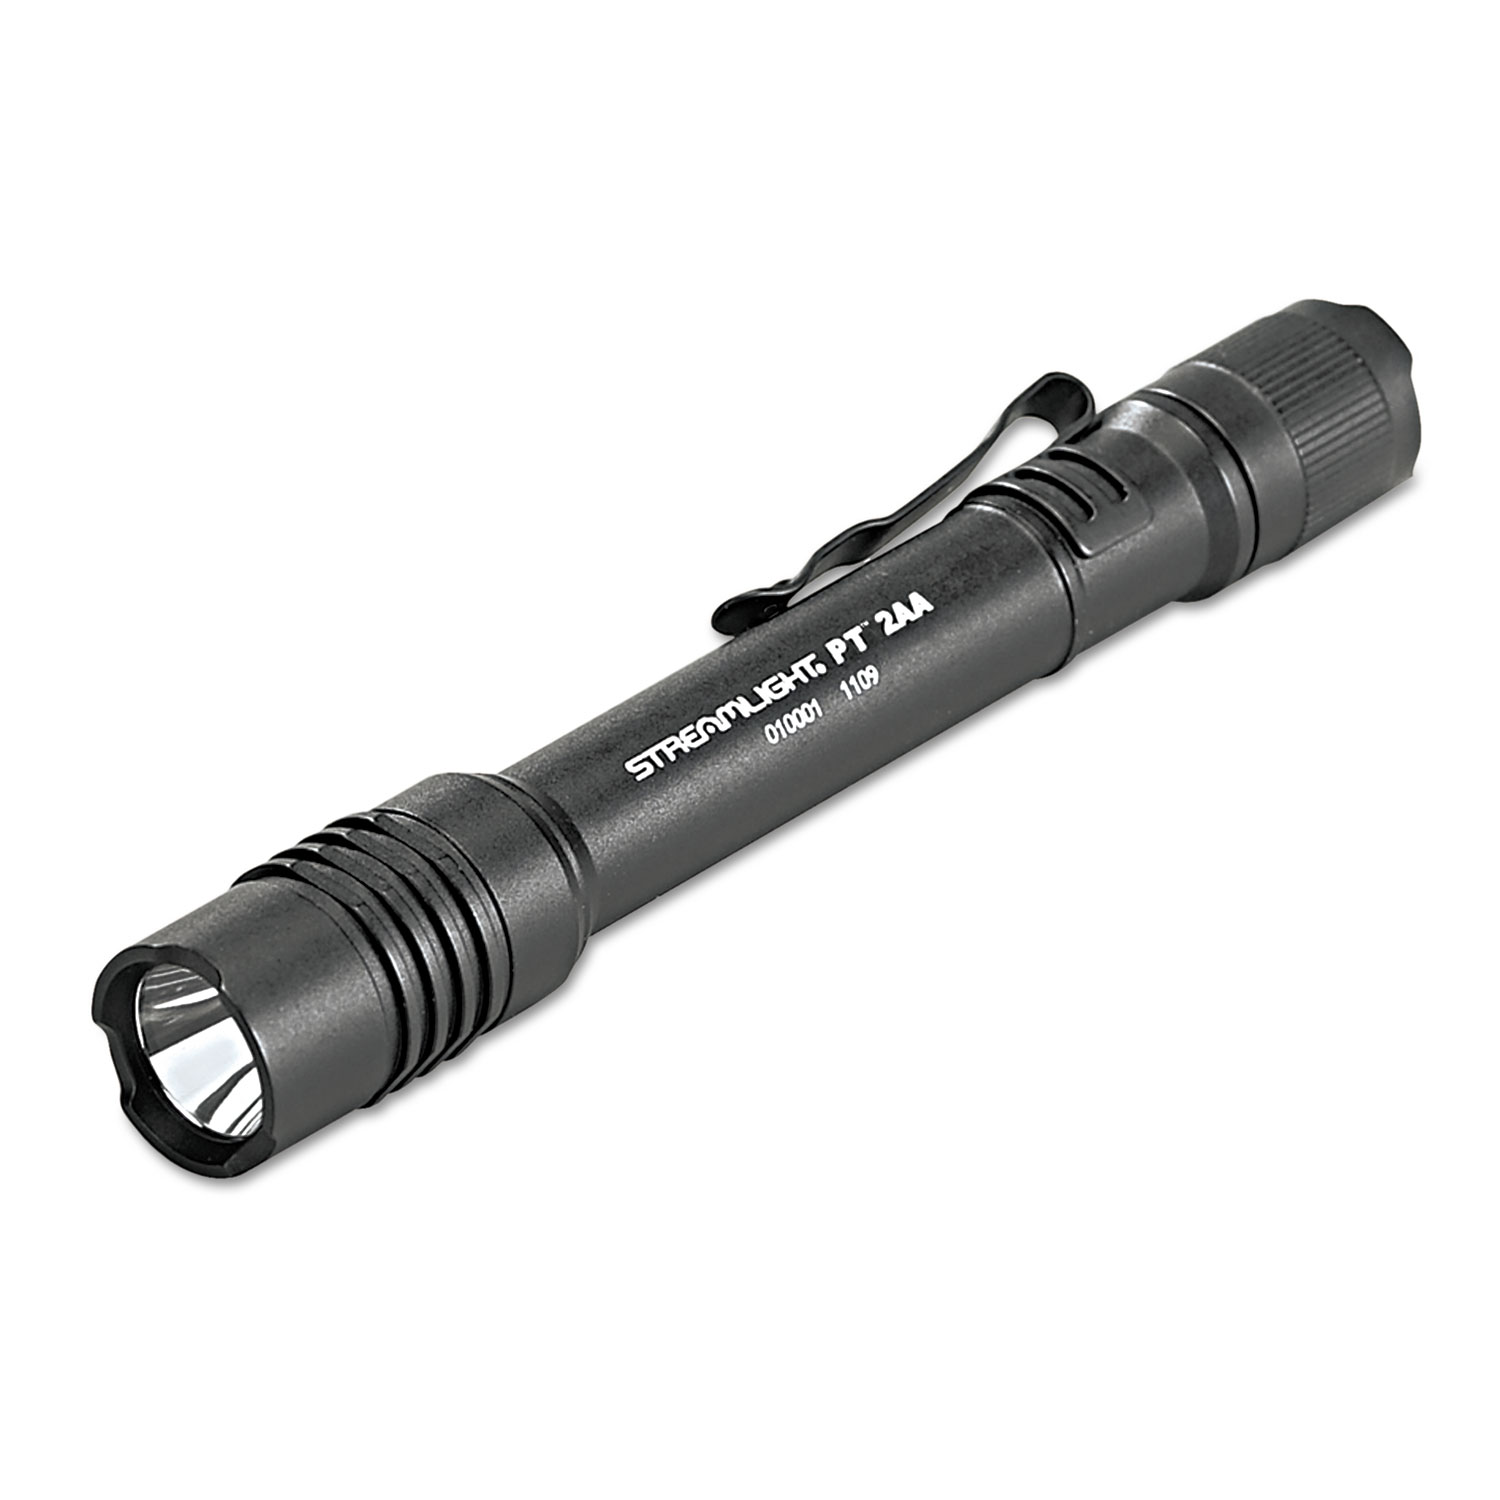 Professional Tactical Flashlight with Holster, 2 AA Batteries (Included), Black